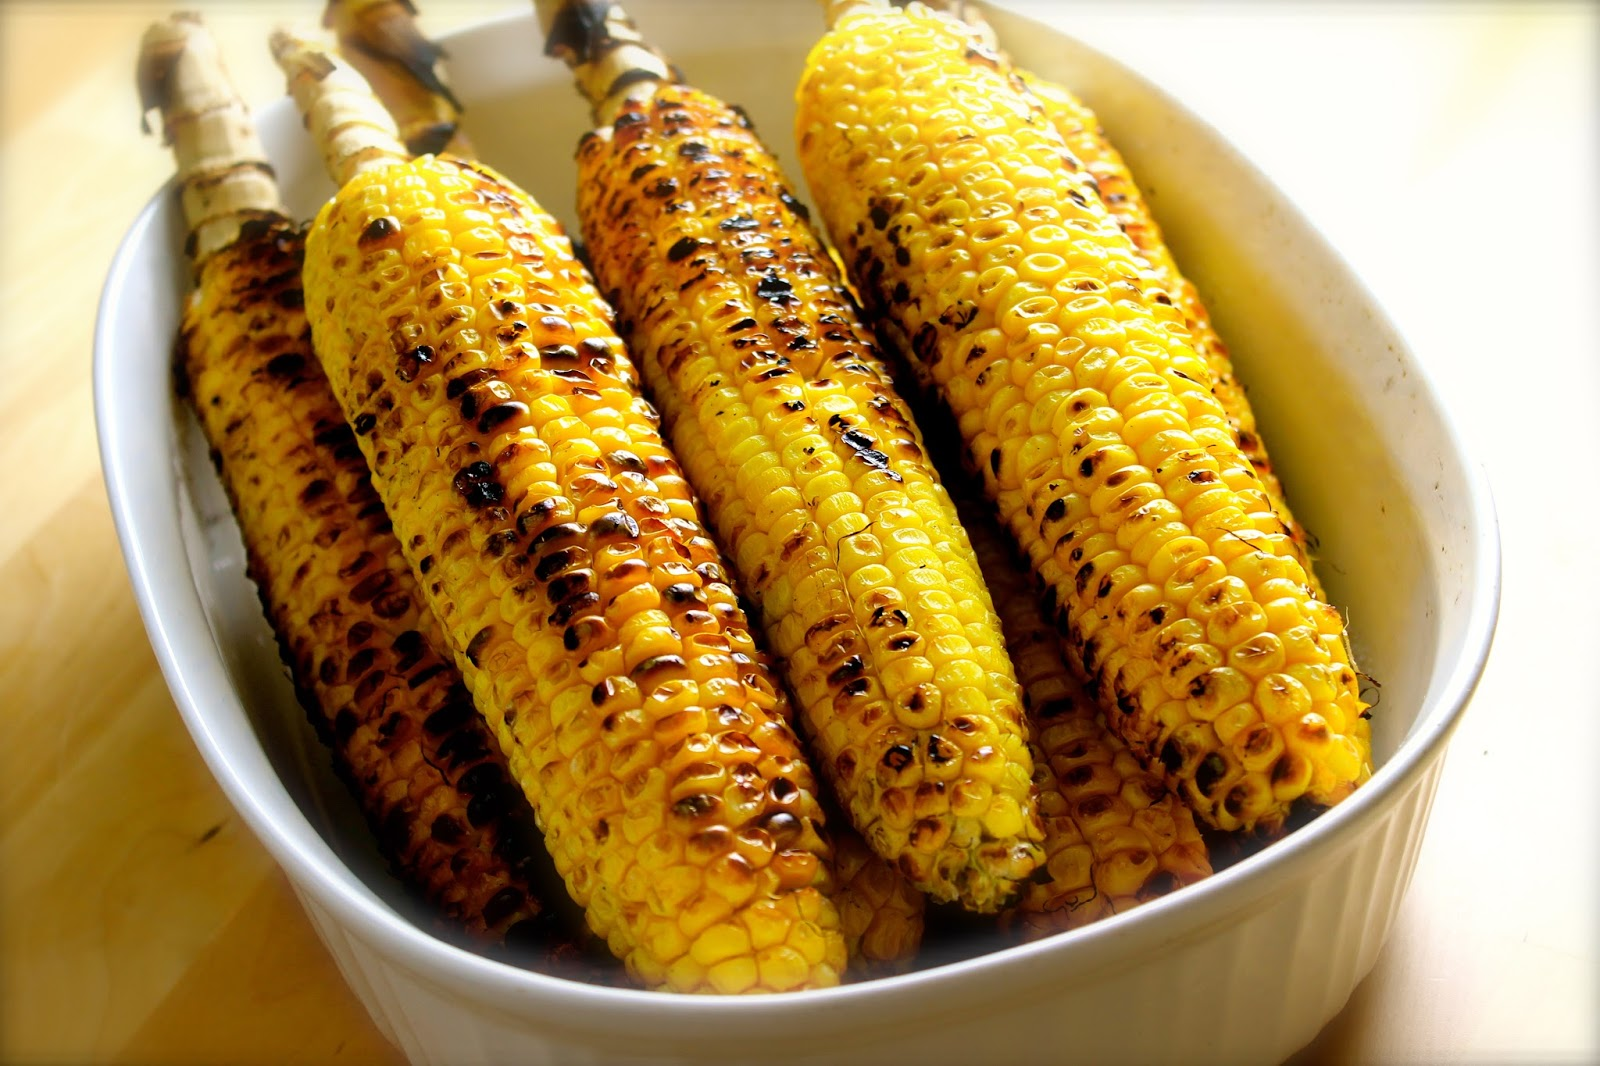 Grilled corn on the cob | Ingredients for 6 portions